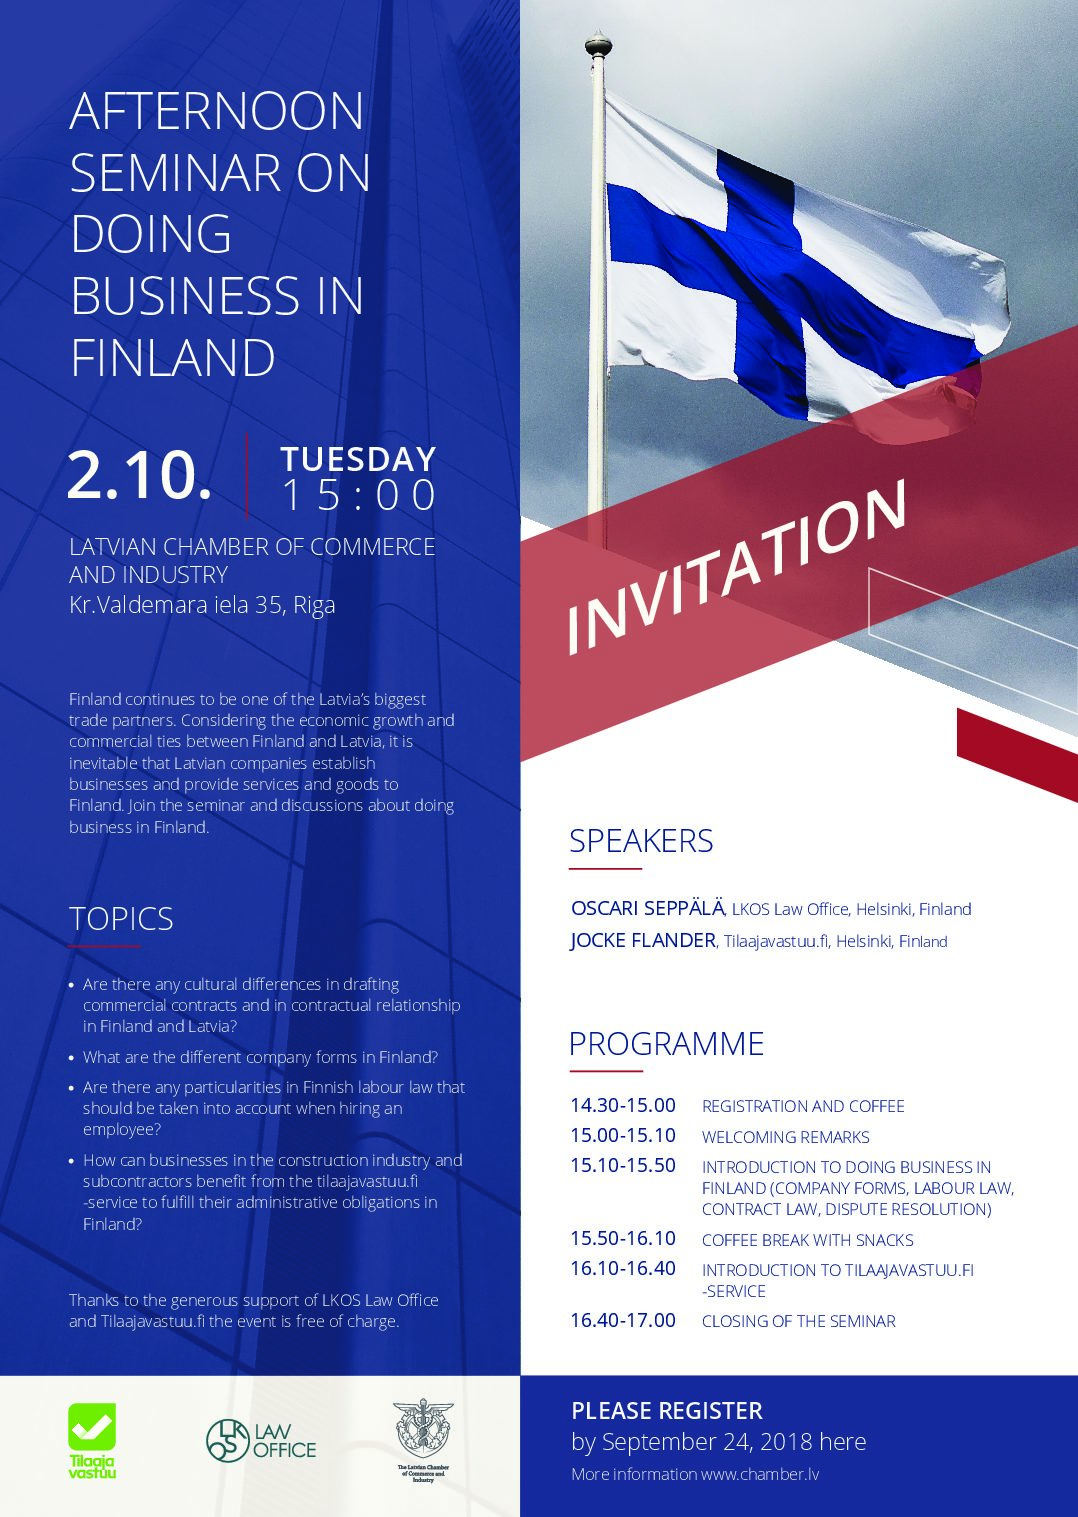 LKOS LAW OFFICE AND TILAAJAVASTUU.FI INVITE TO JOINT SEMINAR IN RIGA – DOING BUSINESS IN FINLAND